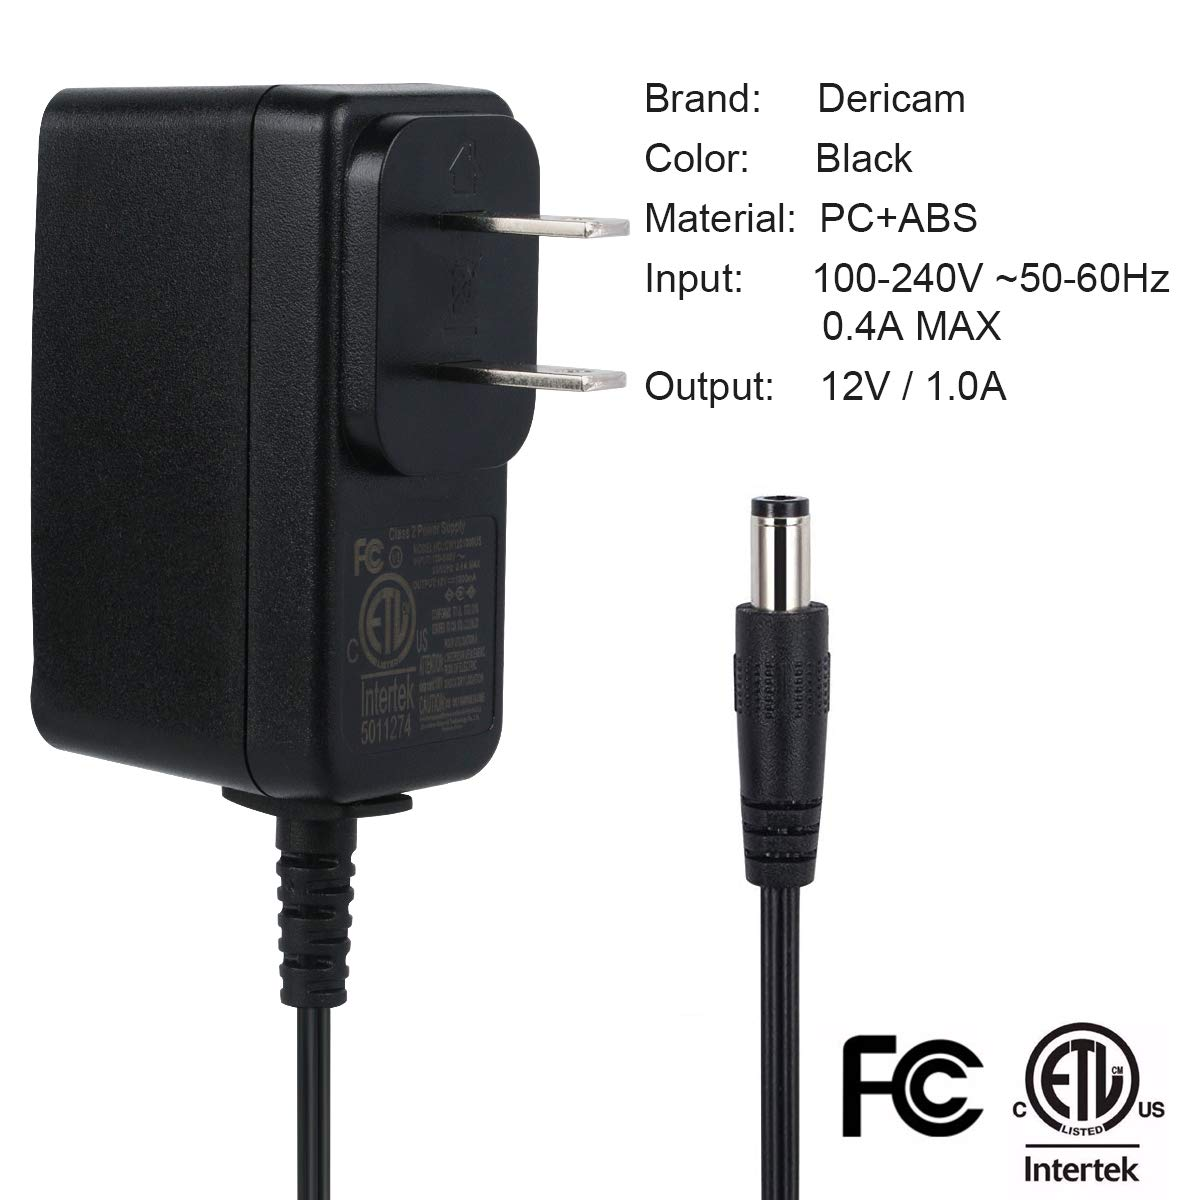 Black Dericam 12V 1A DC Power Supply Adapter for IP//CCTV Security Camera US Plug Input AC 100V-240V//50 or 60Hz//0.4A Max 5ft//1.5 Meter AC to DC Power Cord Output DC 12V 1000mA Wall Charger